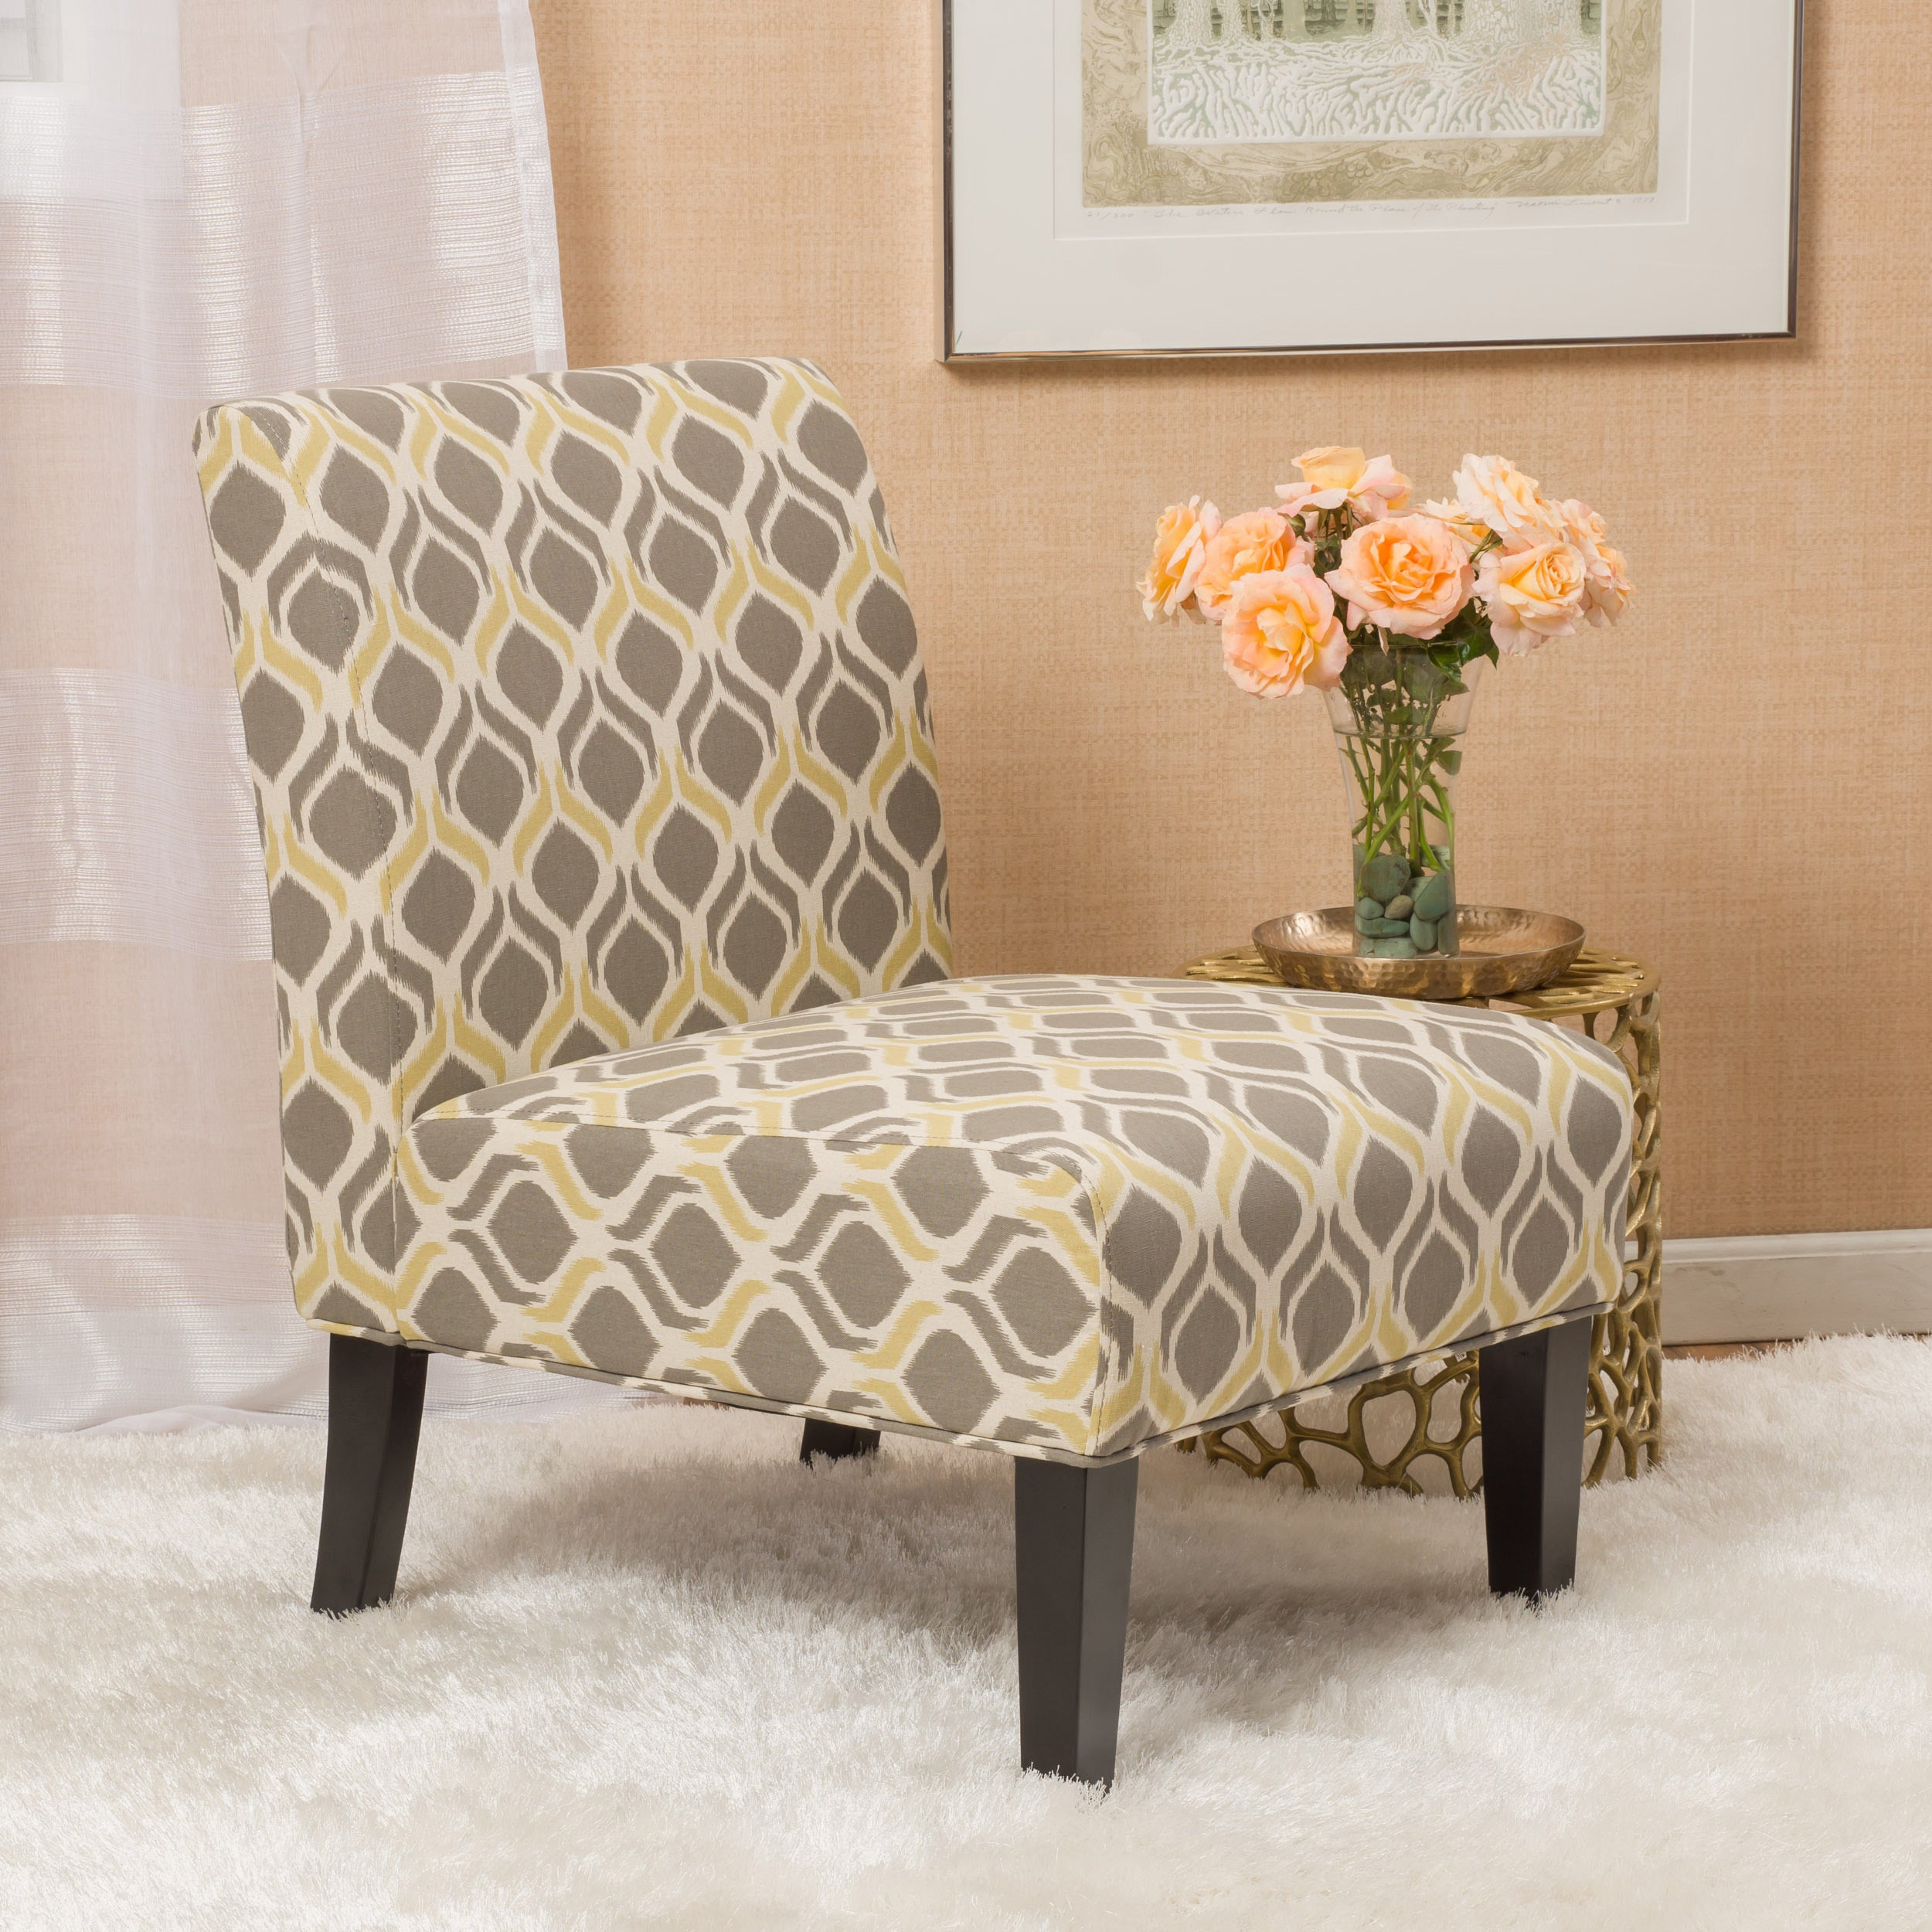 Saloon Fabric Print Accent Chair Set of 2 by Christopher Knight